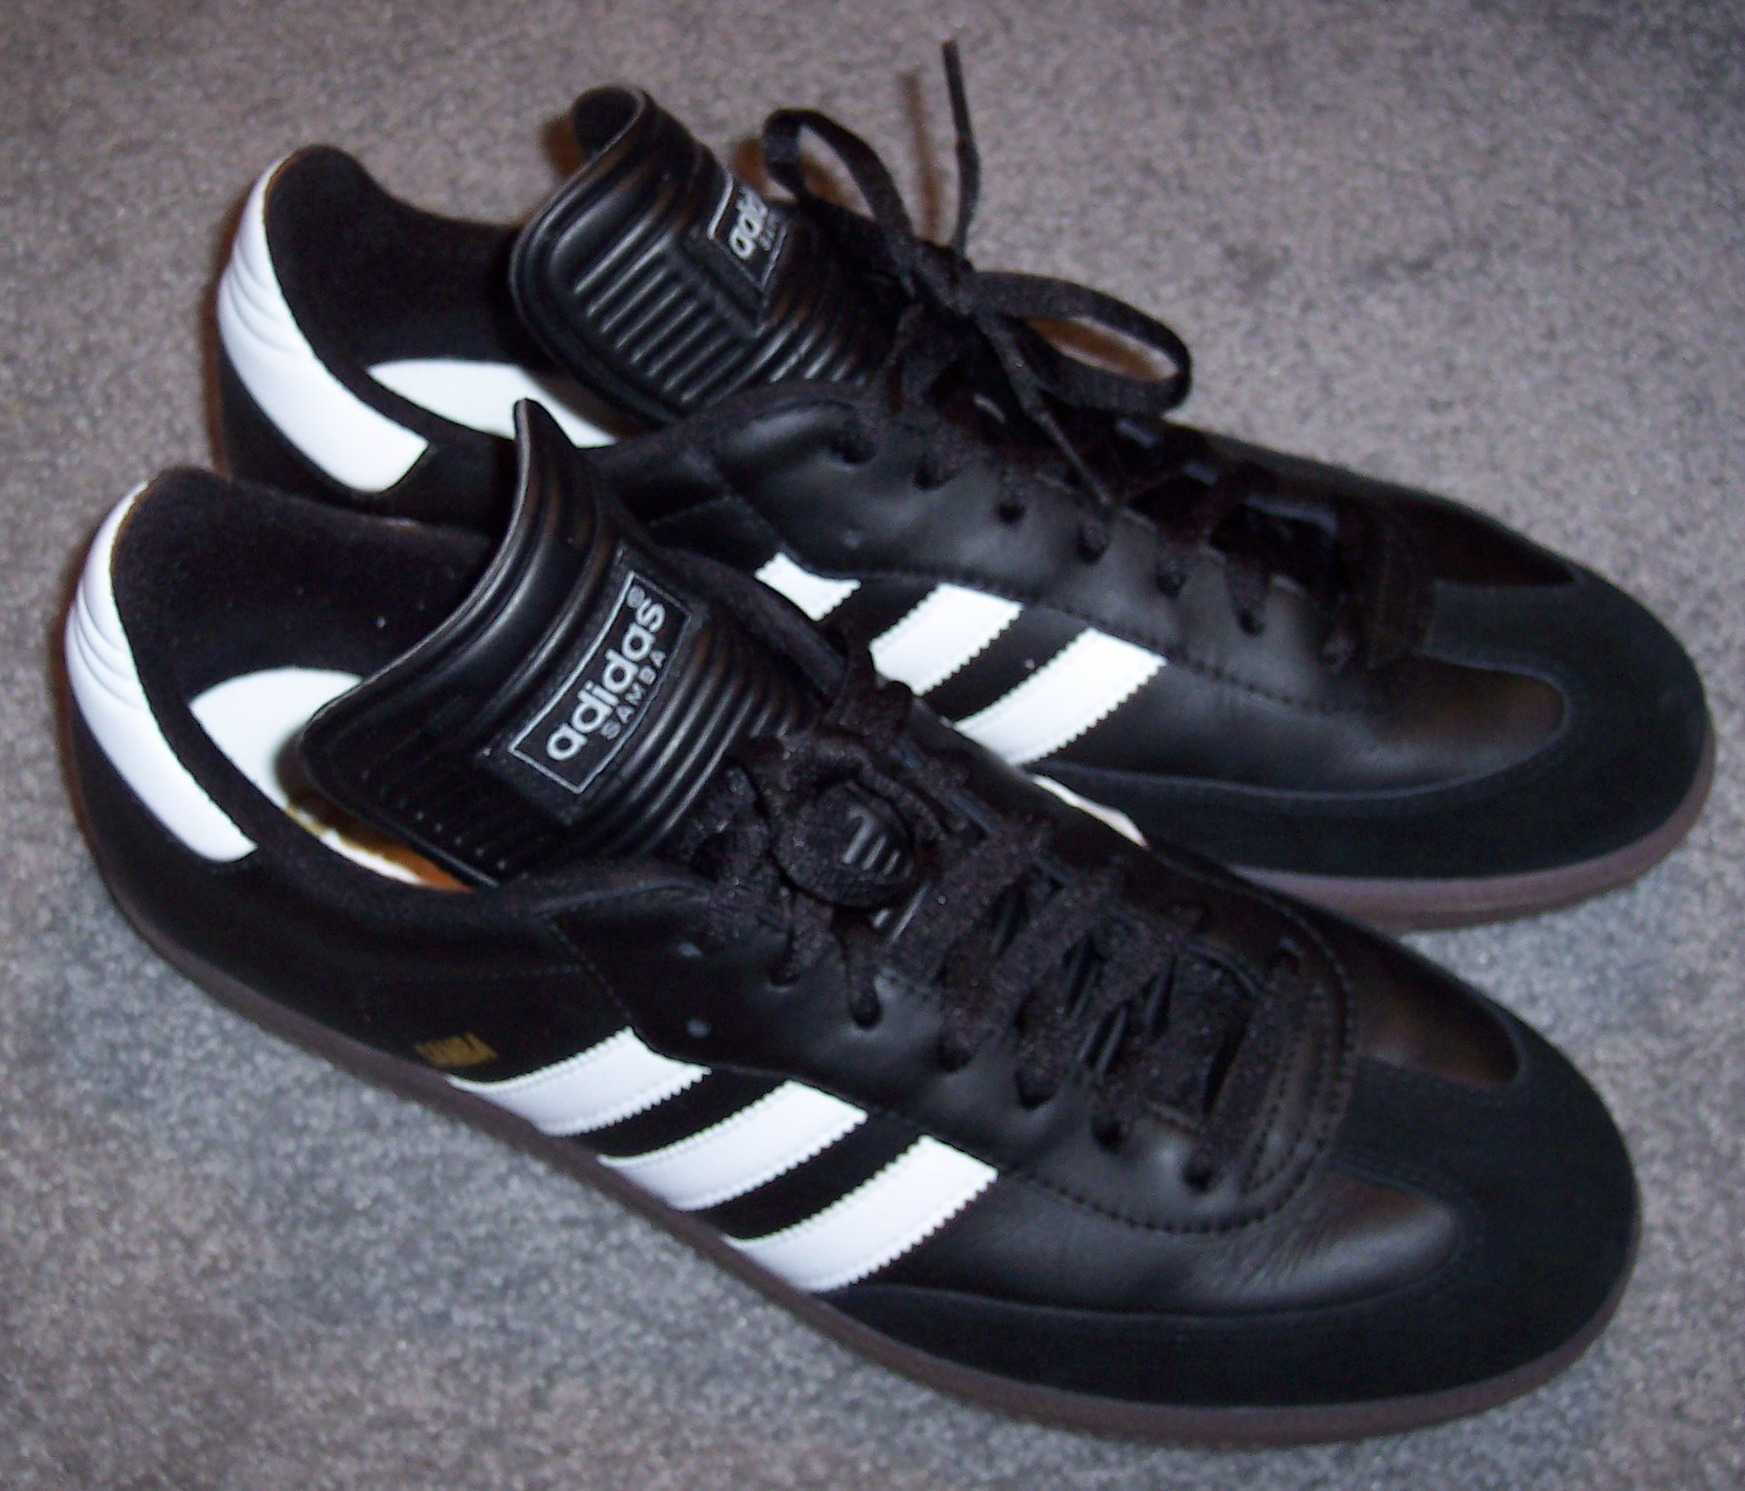 clearance prices offer discounts half price Adidas Samba - Wikipedia